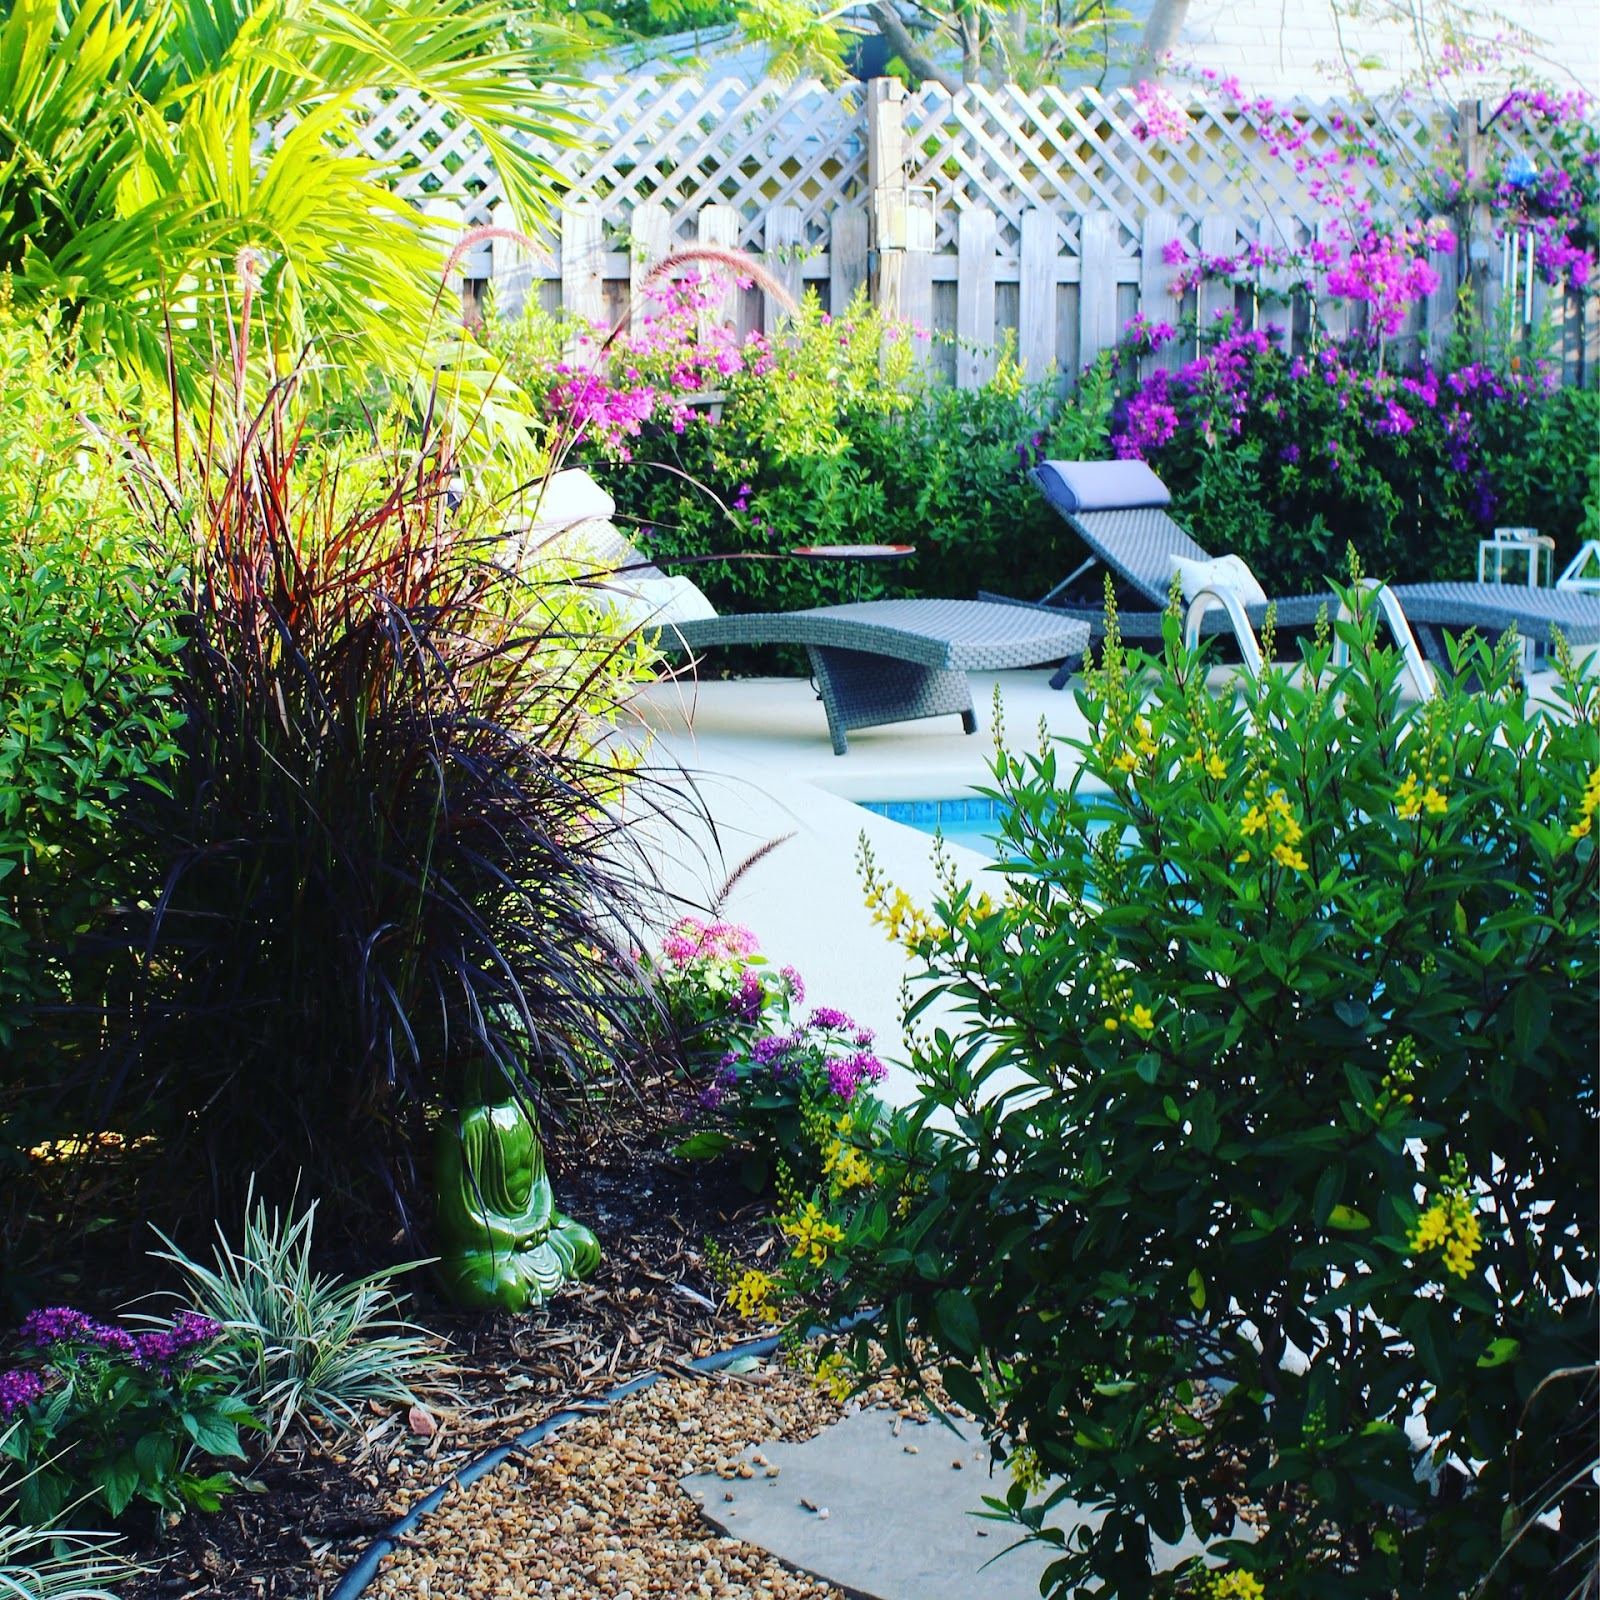 A Guide - Making Your Backyard Safer & More Private